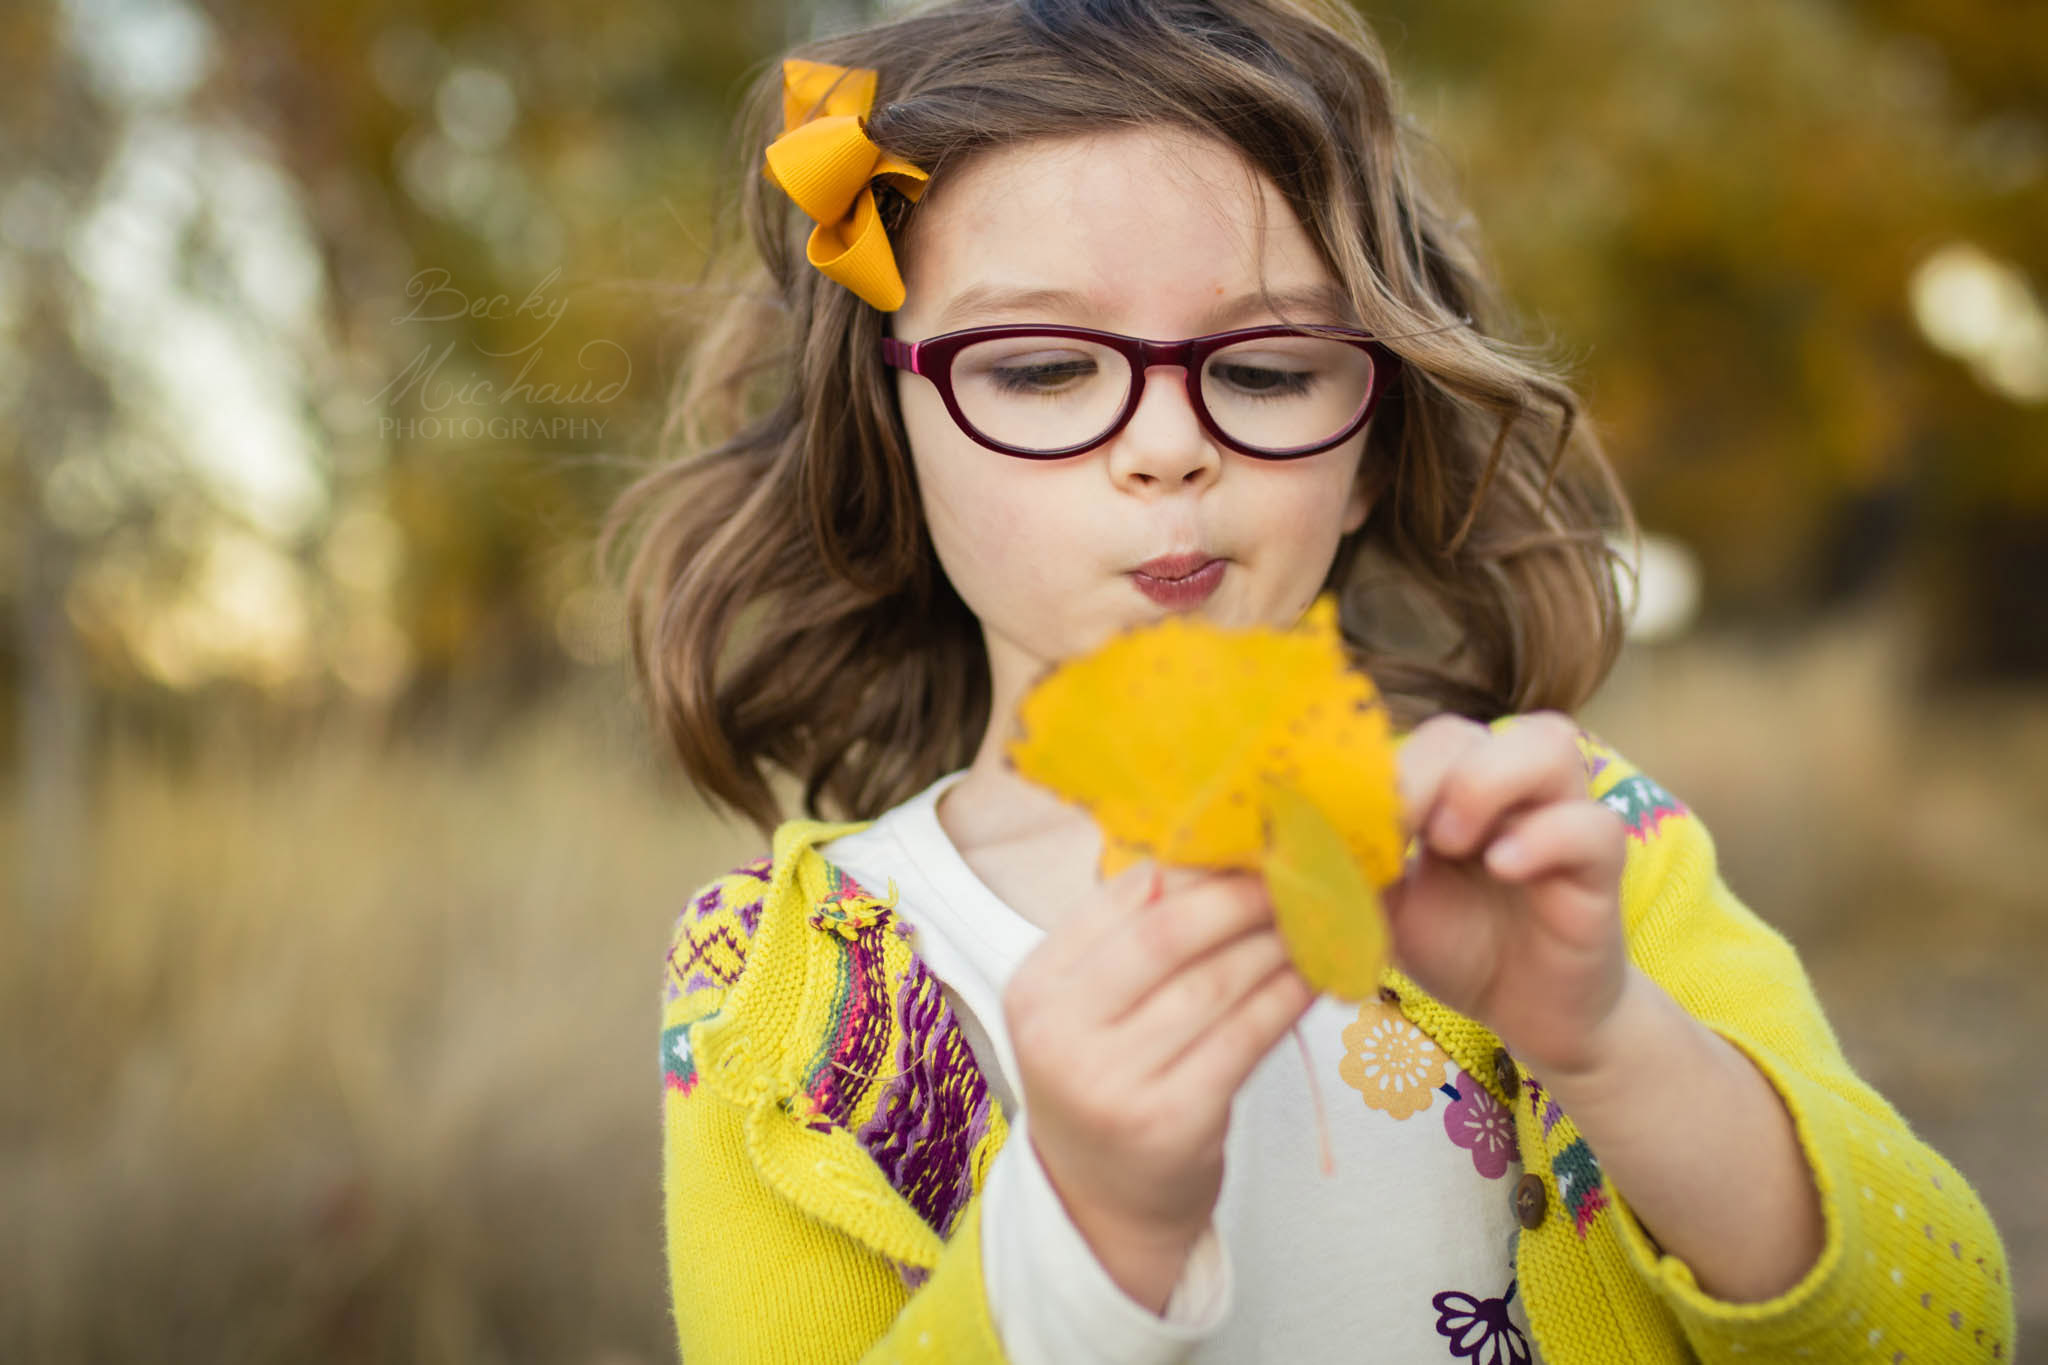 Lifestyle portrait of a little girl examining a yellow leaf during her fall family photos